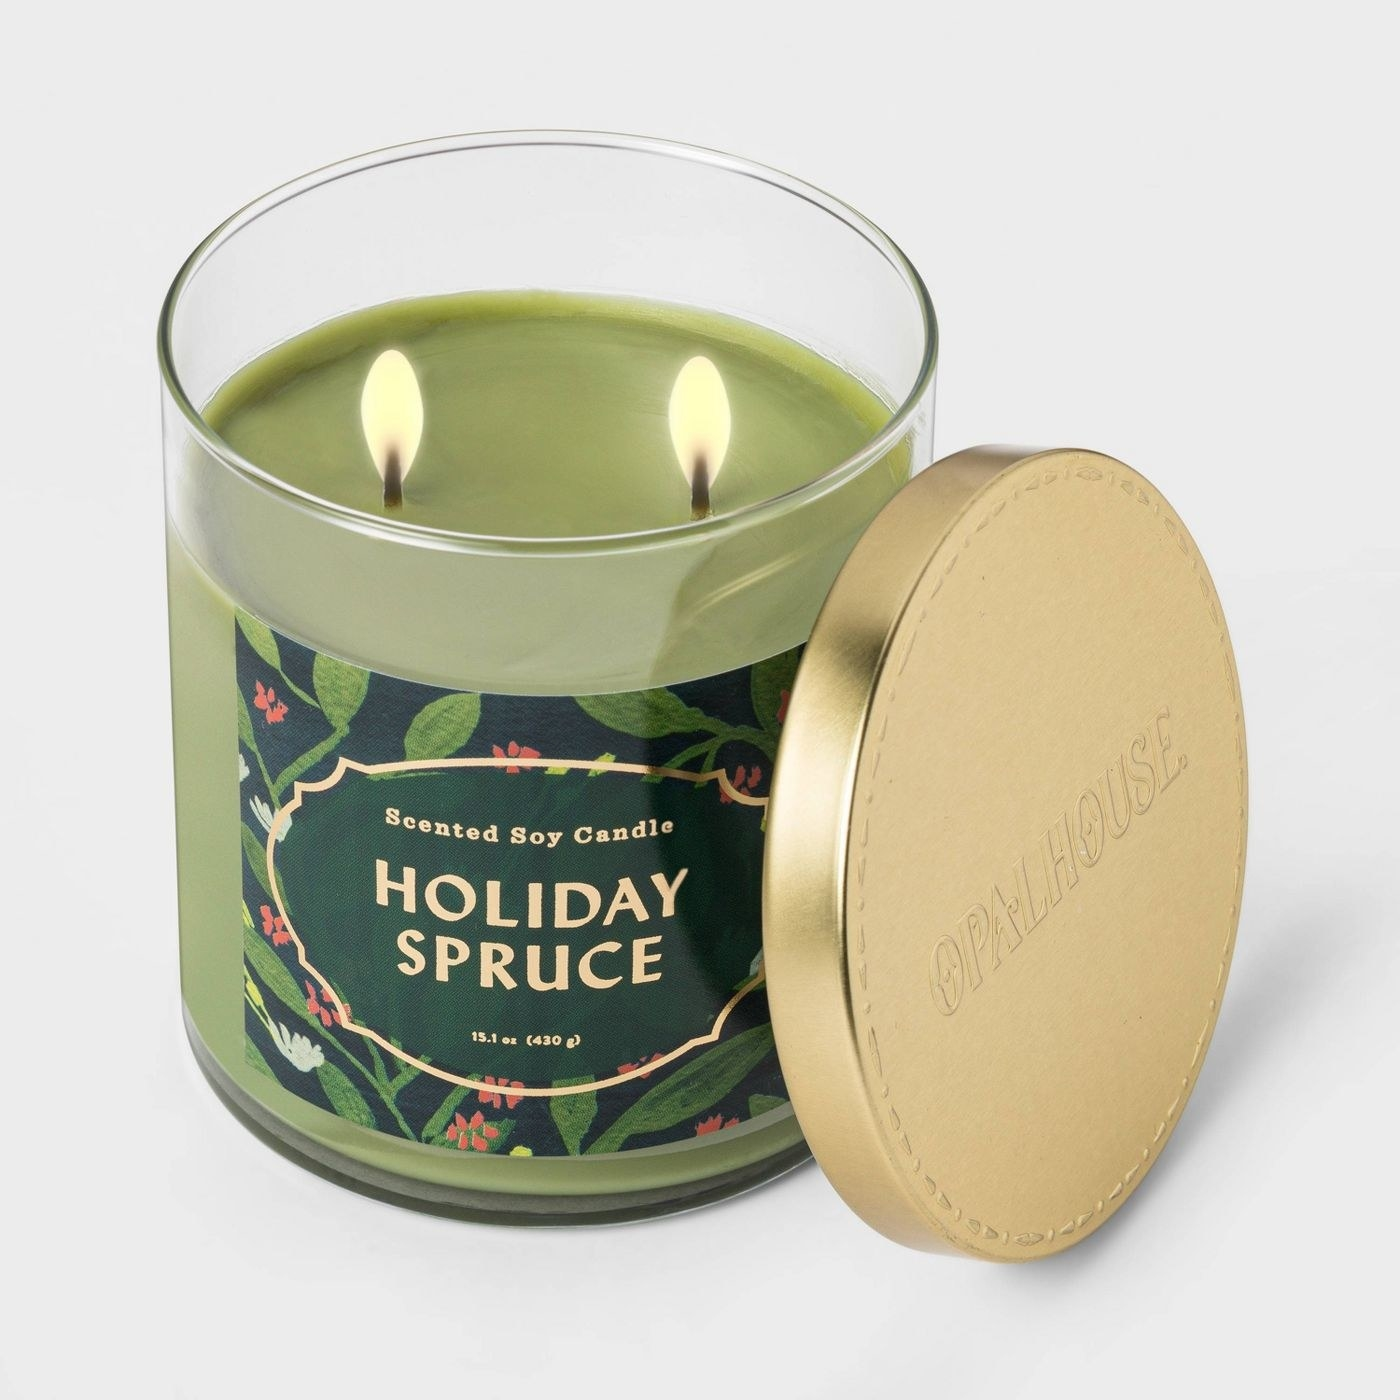 a lit holiday spruce candle from opalhouse